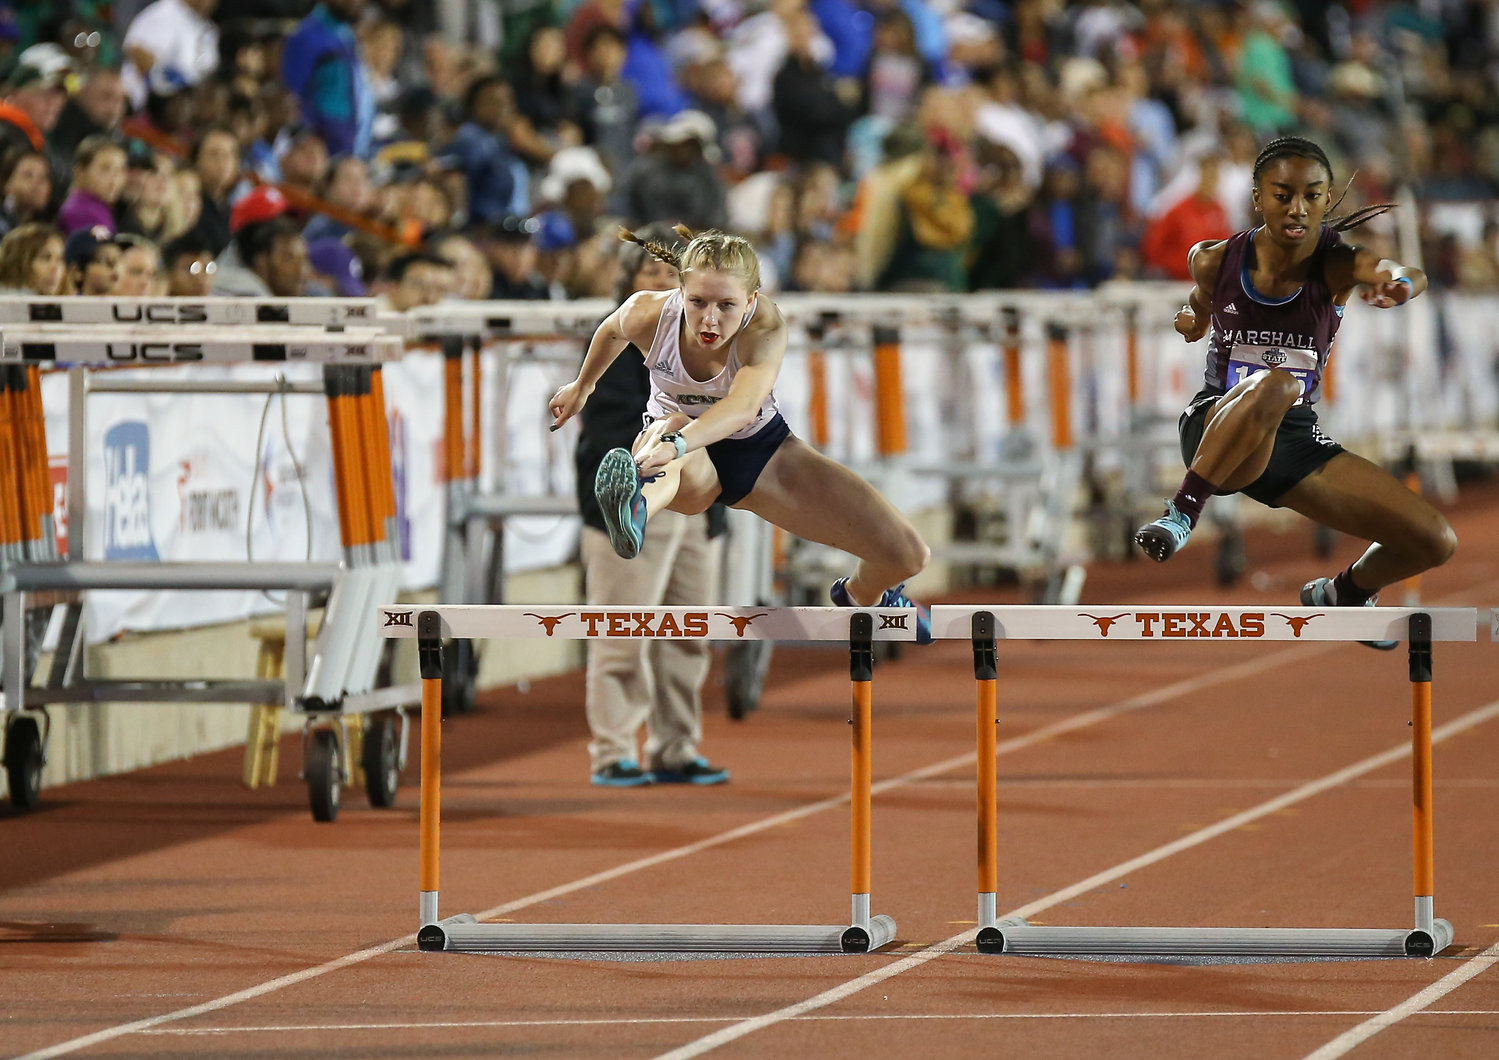 Julie Perry of McNeil High School runs in the Class 6A girls 300-meter hurdles event at the UIL State Track and Field Meet on Saturday, May 11, 2019 at Mike A. Myers Stadium in Austin, Texas.